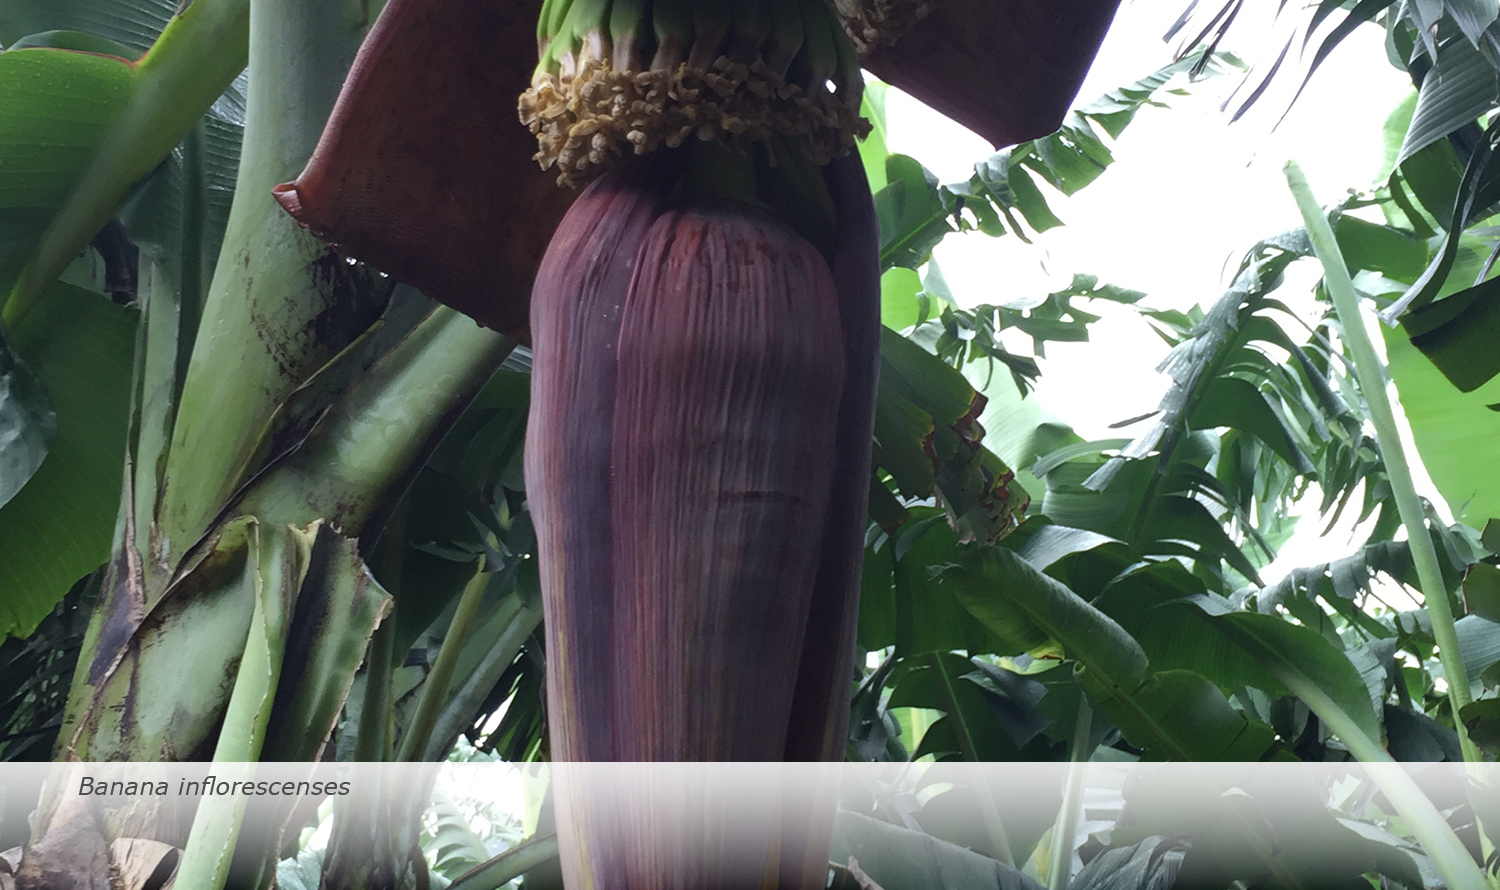 Info & Facts: Banana inflorescenses